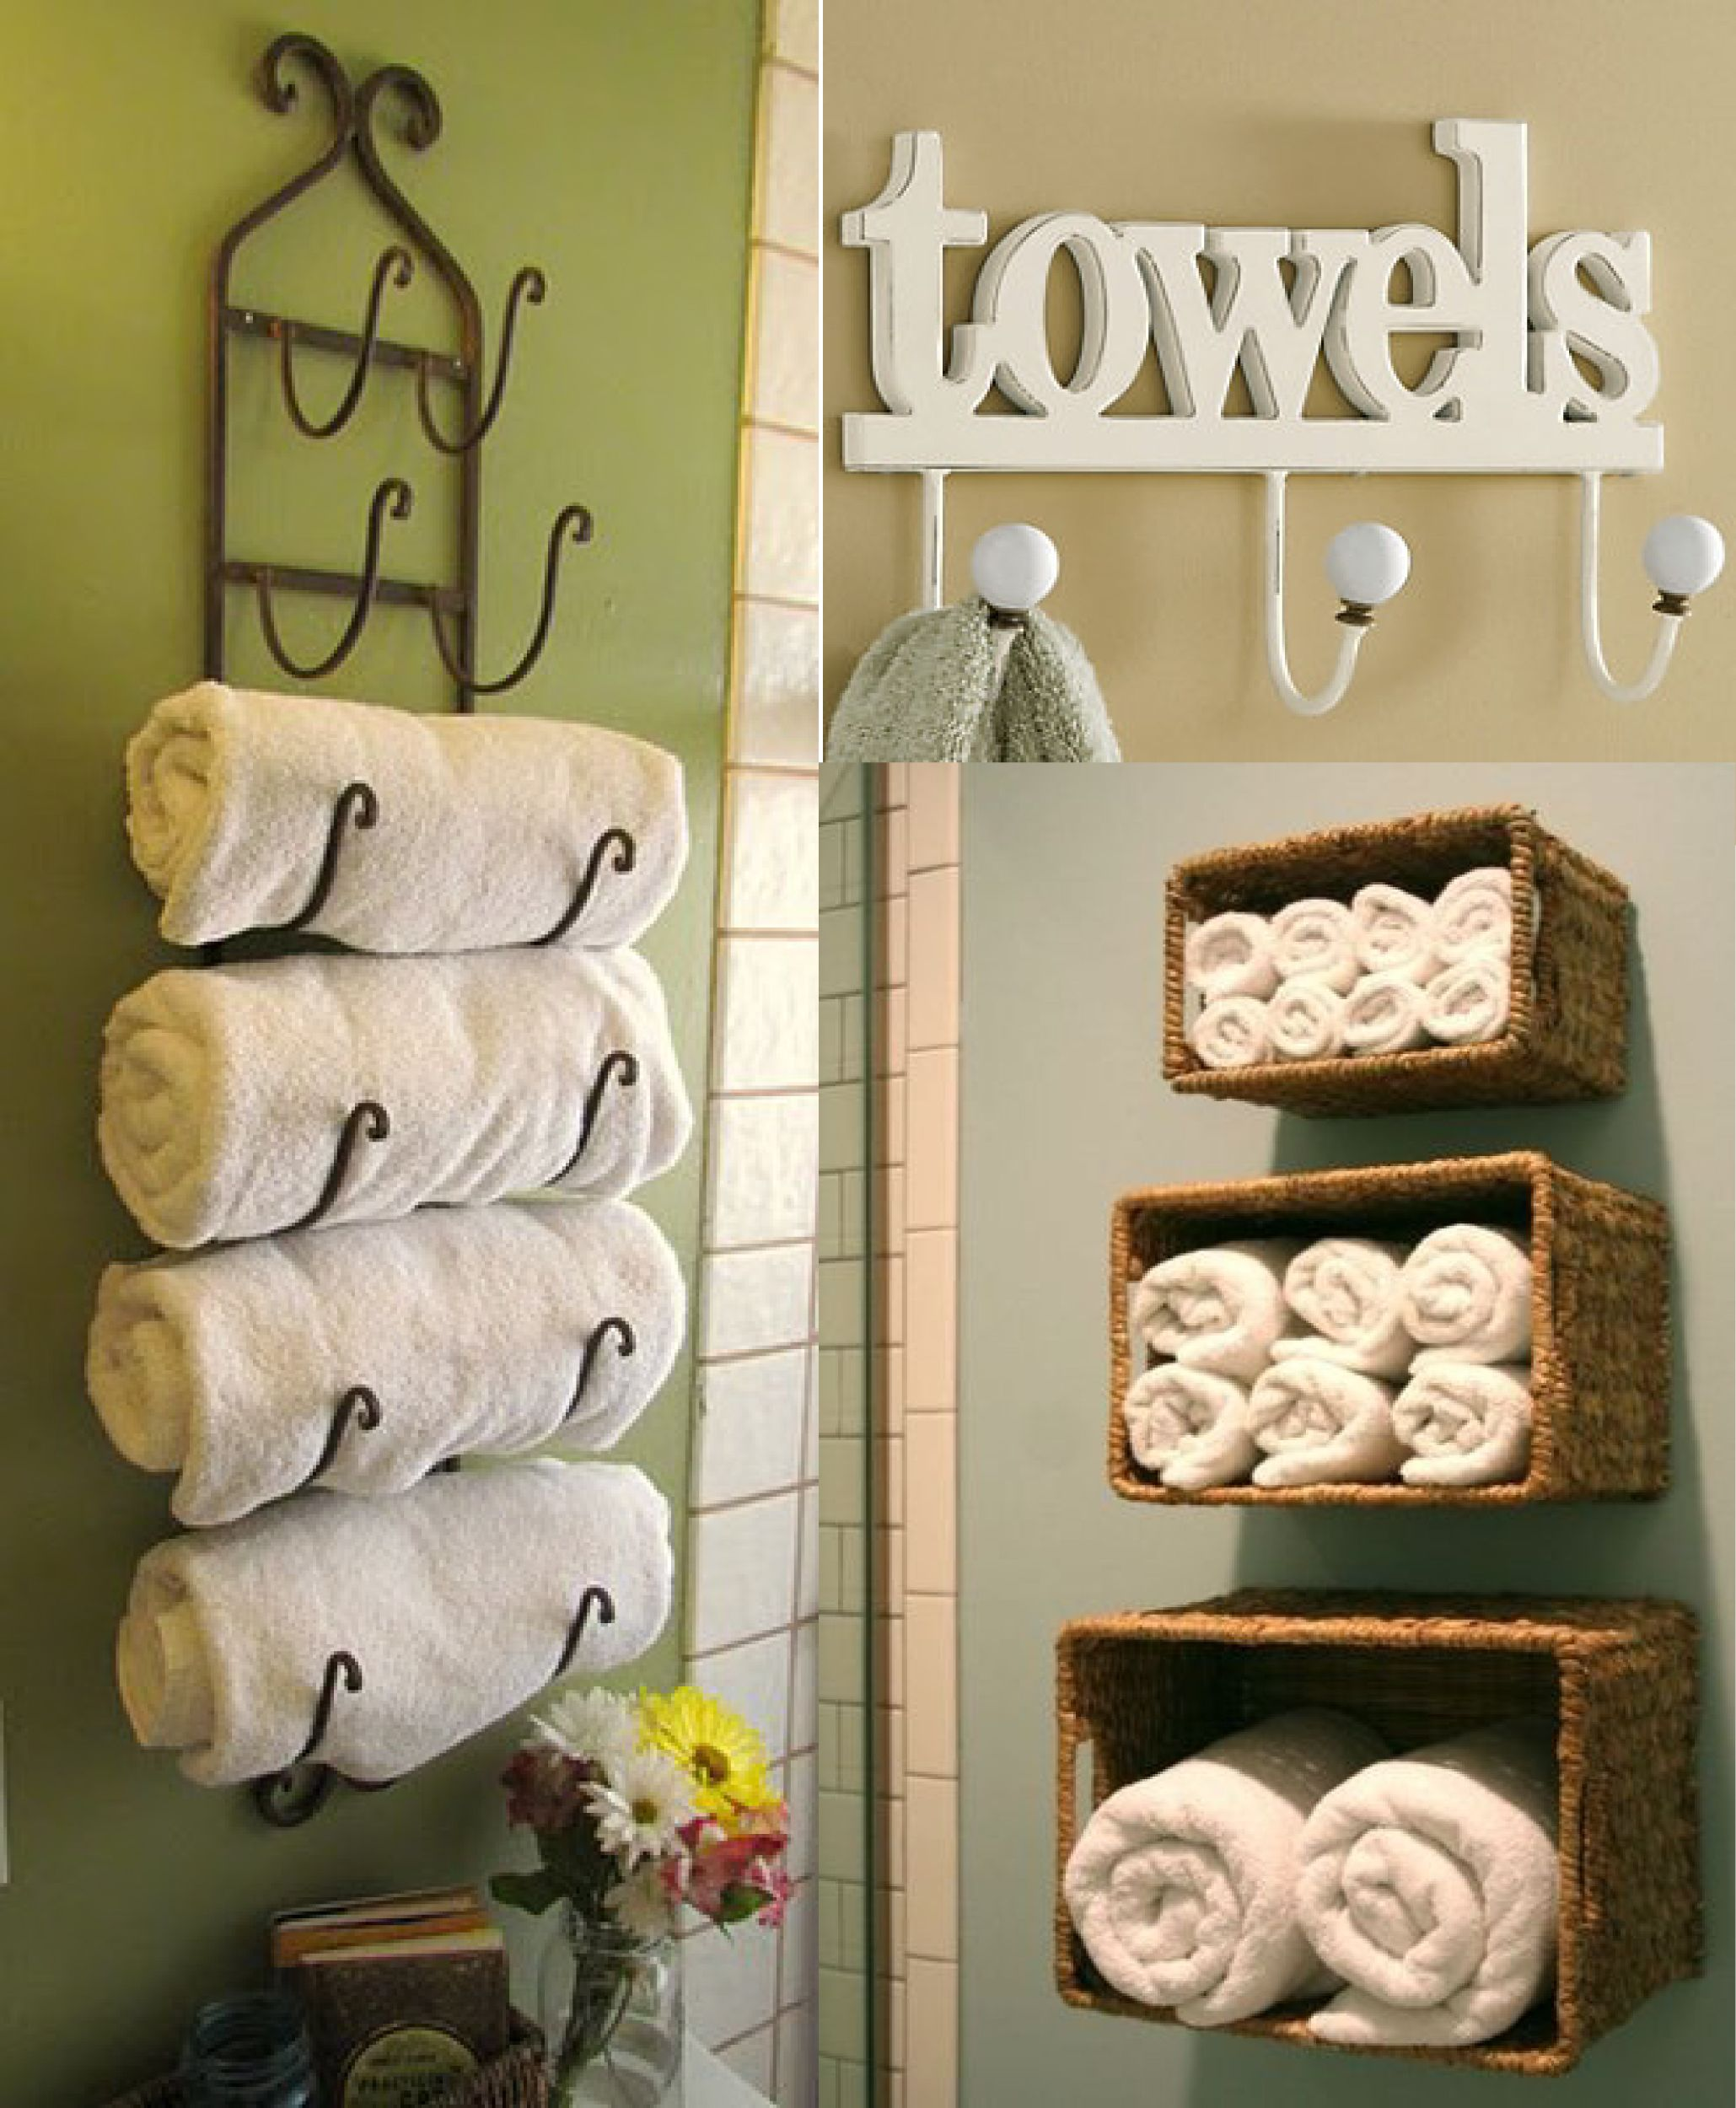 Towel Storage Ideas For Bathroom Entrancing Bathroom Storage Ideas Pinterest Shannon Rooks  Corporate Design Inspiration